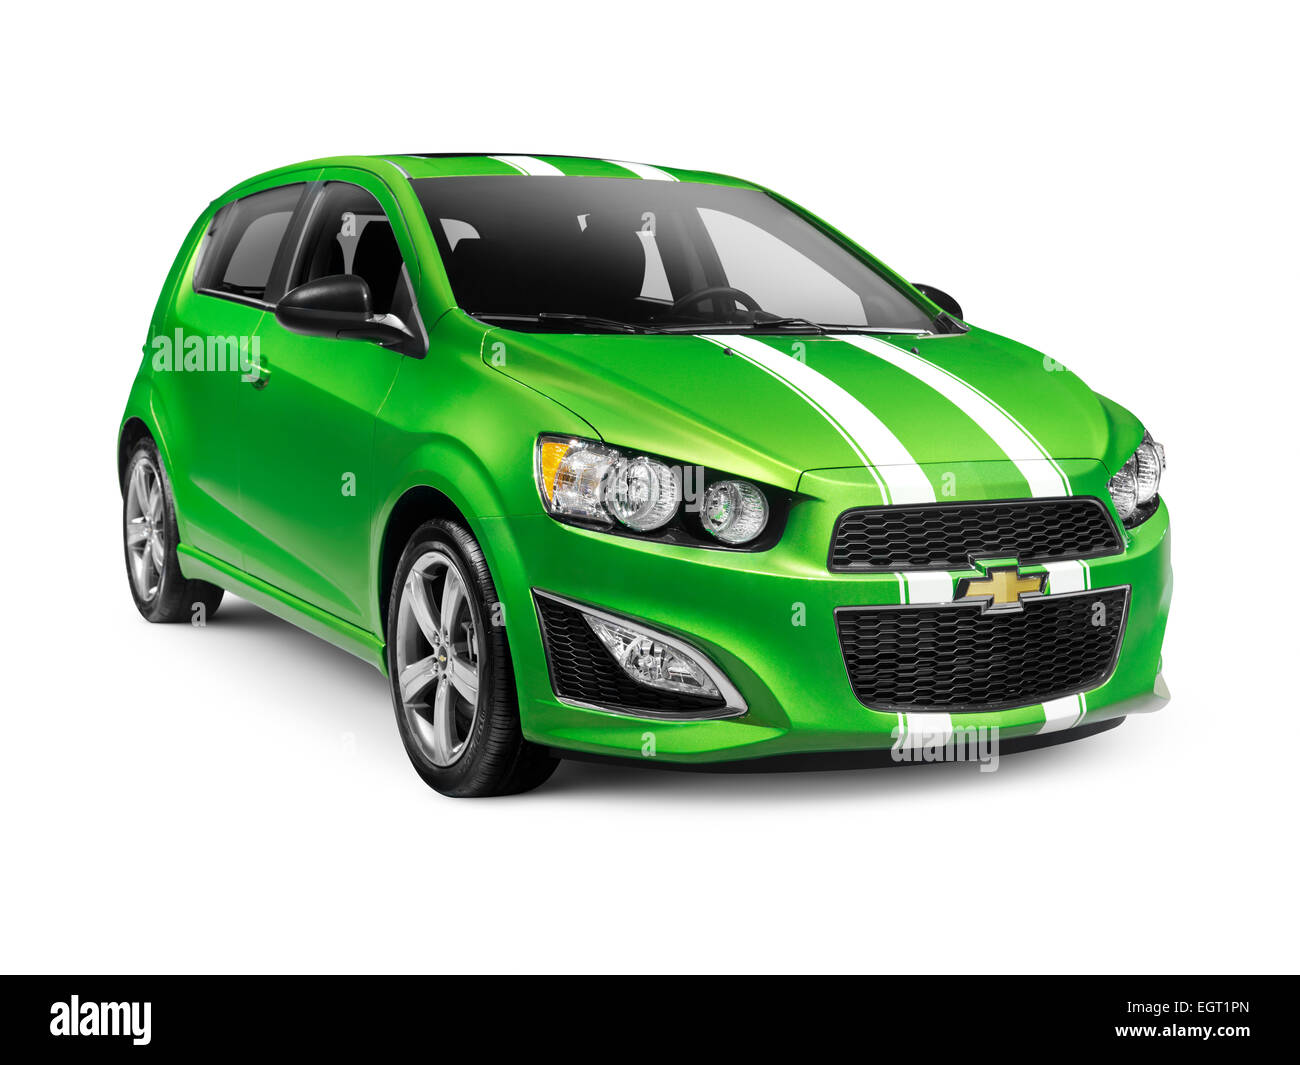 green 2015 chevrolet sonic rs small car isolated on white background stock photo 79204237 alamy. Black Bedroom Furniture Sets. Home Design Ideas